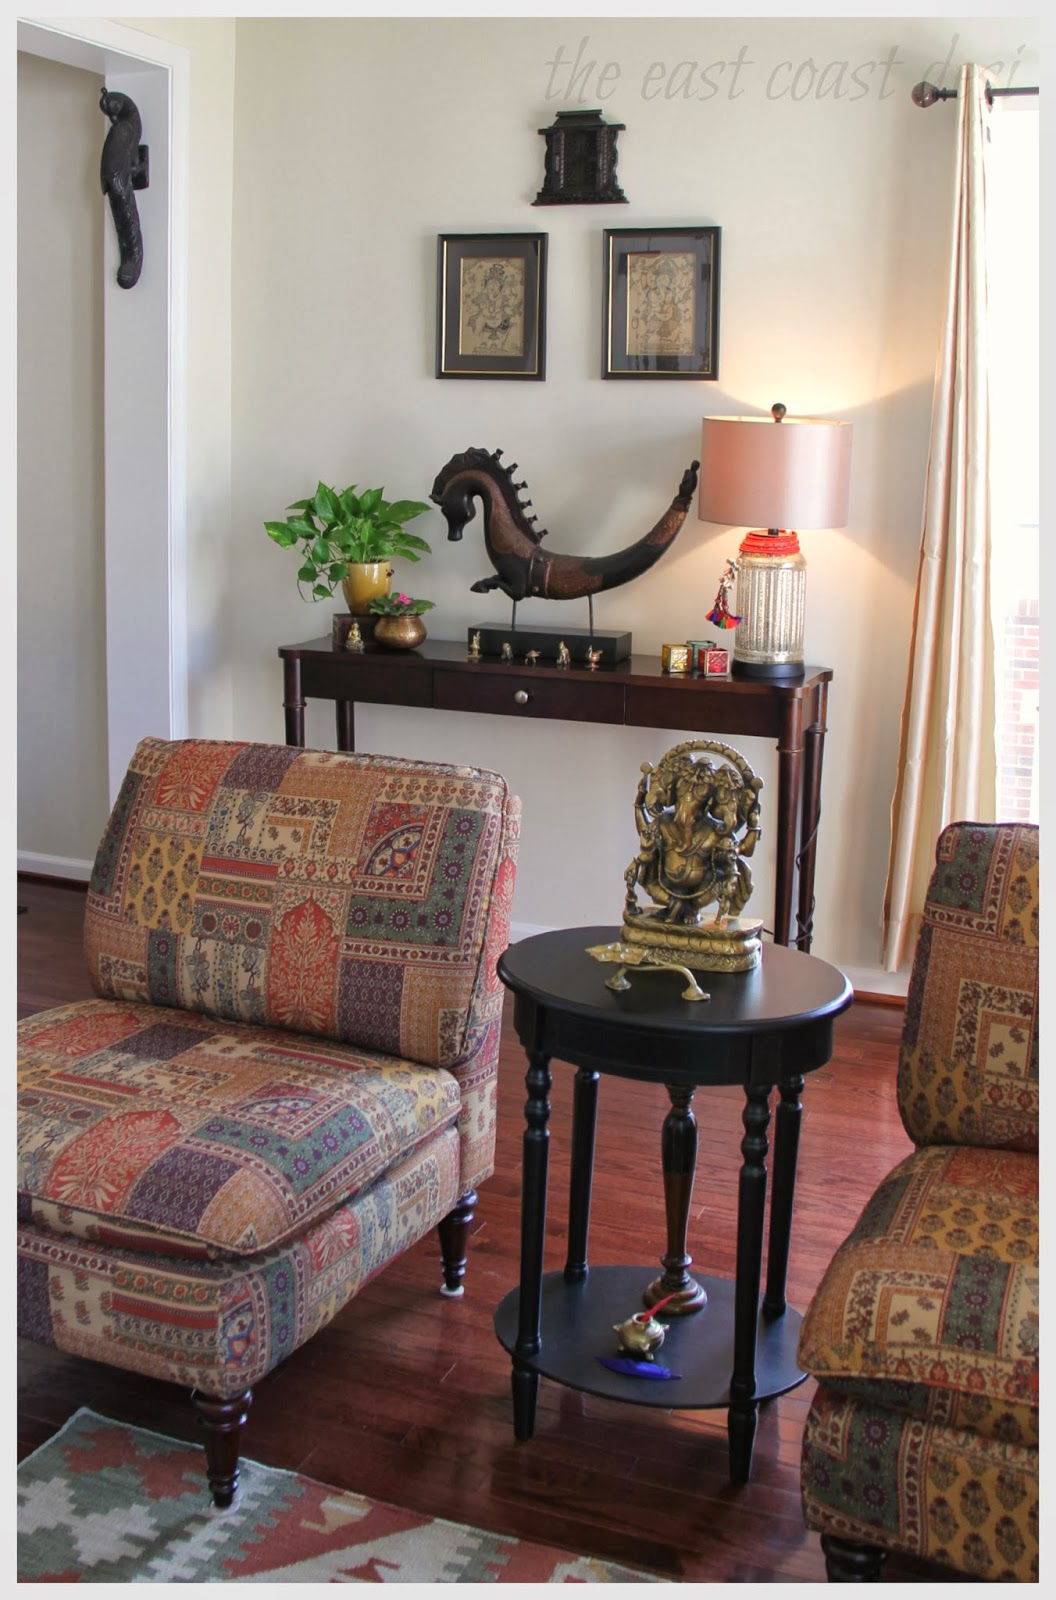 The east coast desi my living room a reflection of india for Living room decorating ideas indian style